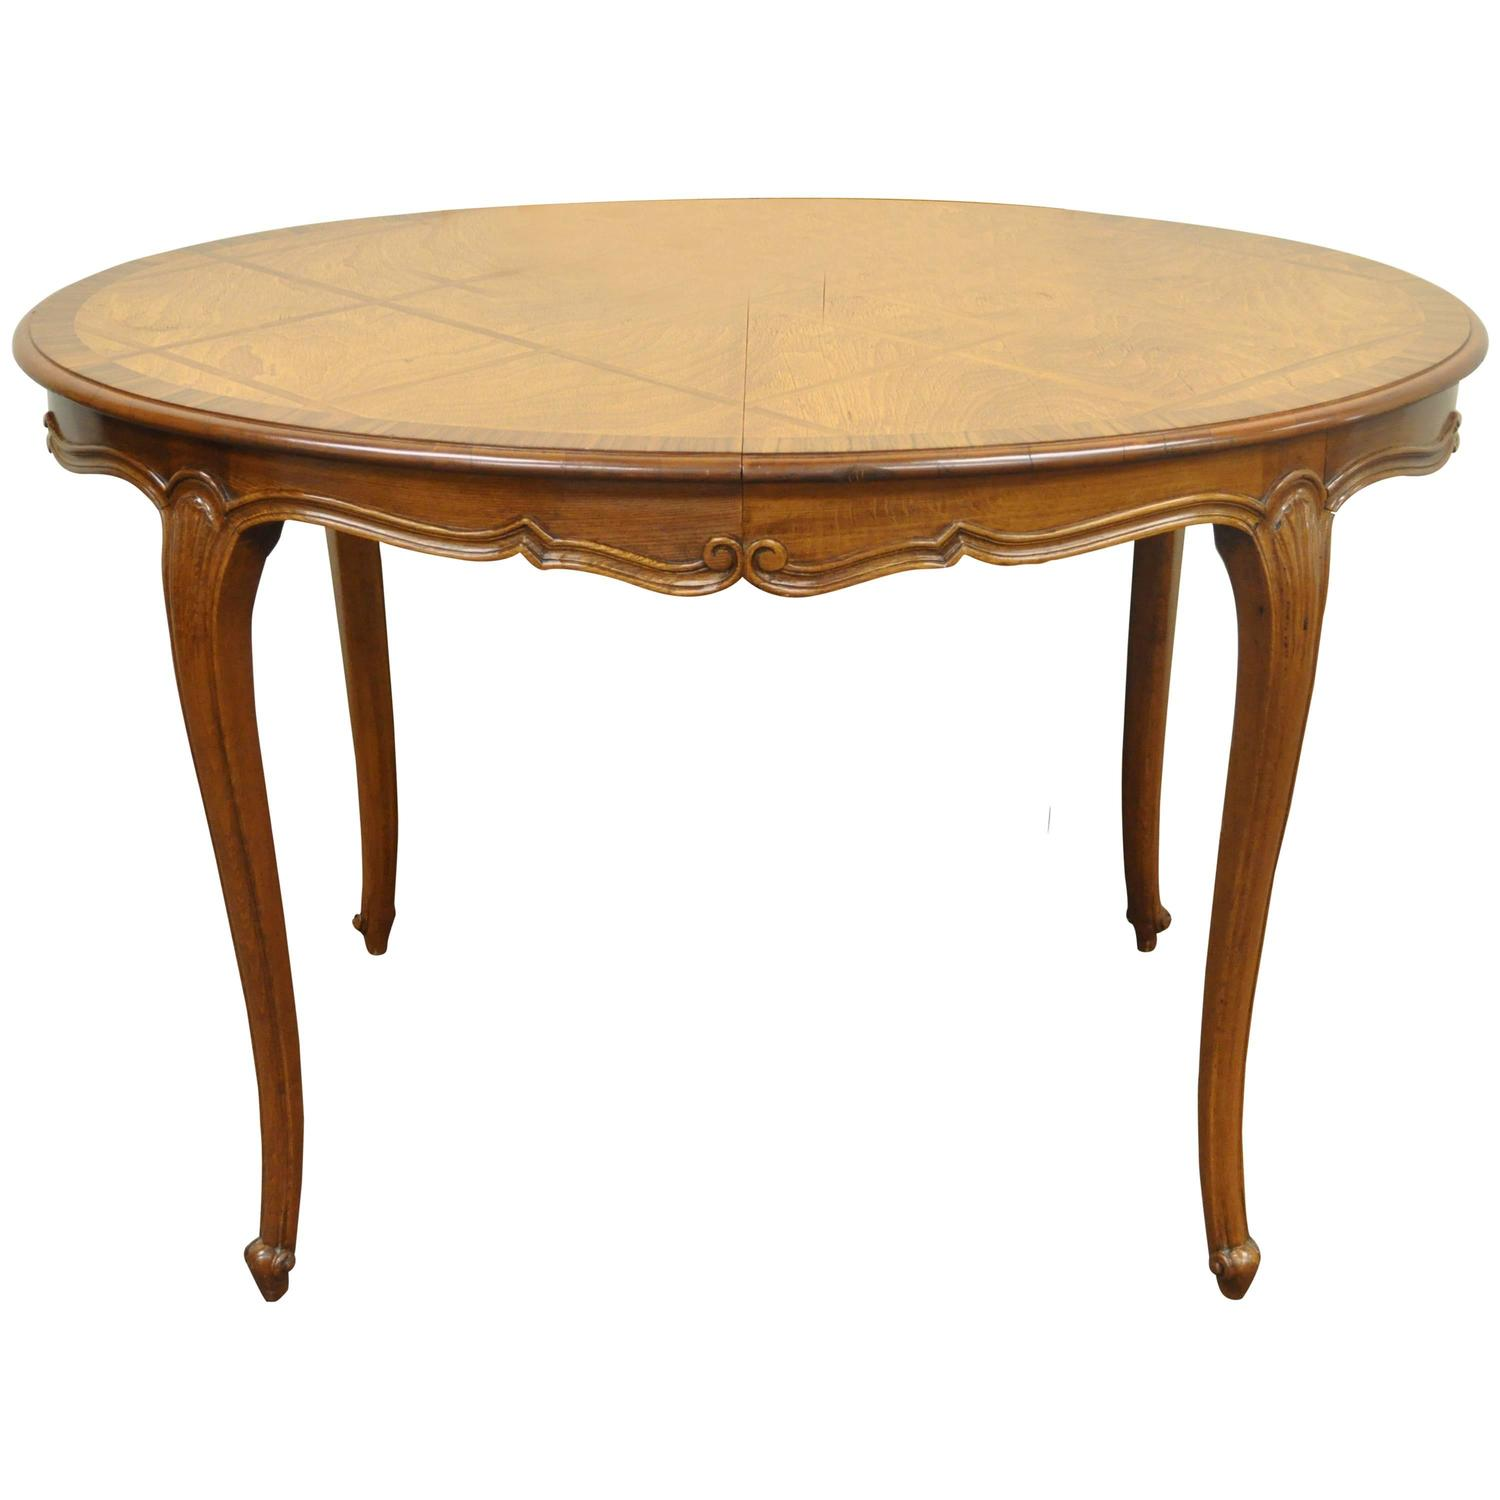 Petite Country French Or Louis XV Style Parquetry Inlaid Custom Dining Table